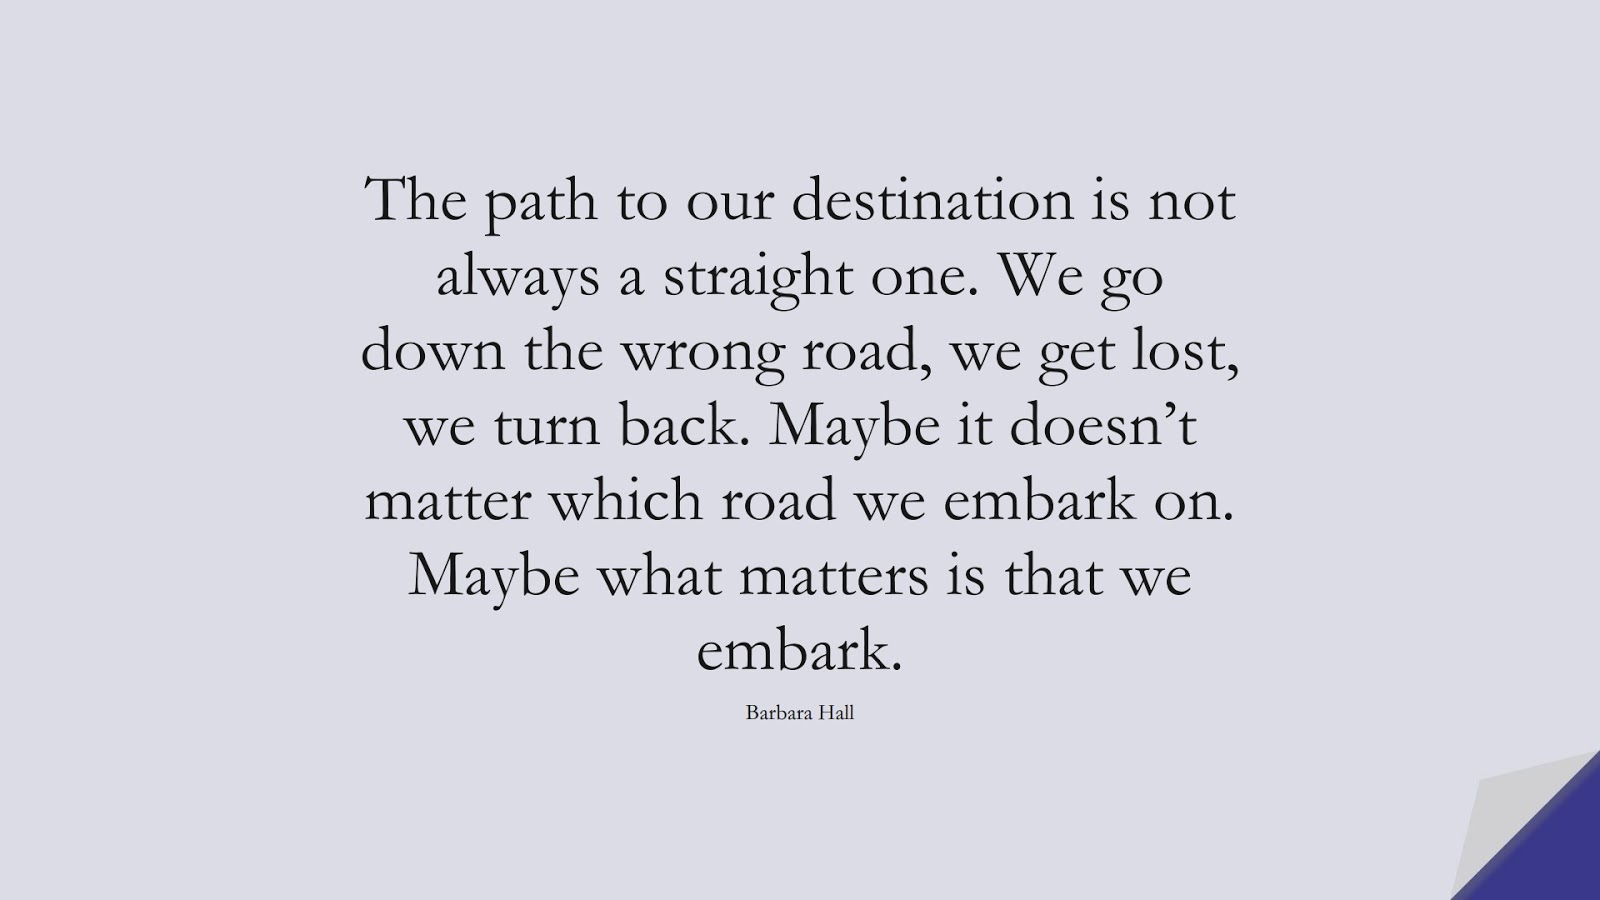 The path to our destination is not always a straight one. We go down the wrong road, we get lost, we turn back. Maybe it doesn't matter which road we embark on. Maybe what matters is that we embark. (Barbara Hall);  #LifeQuotes